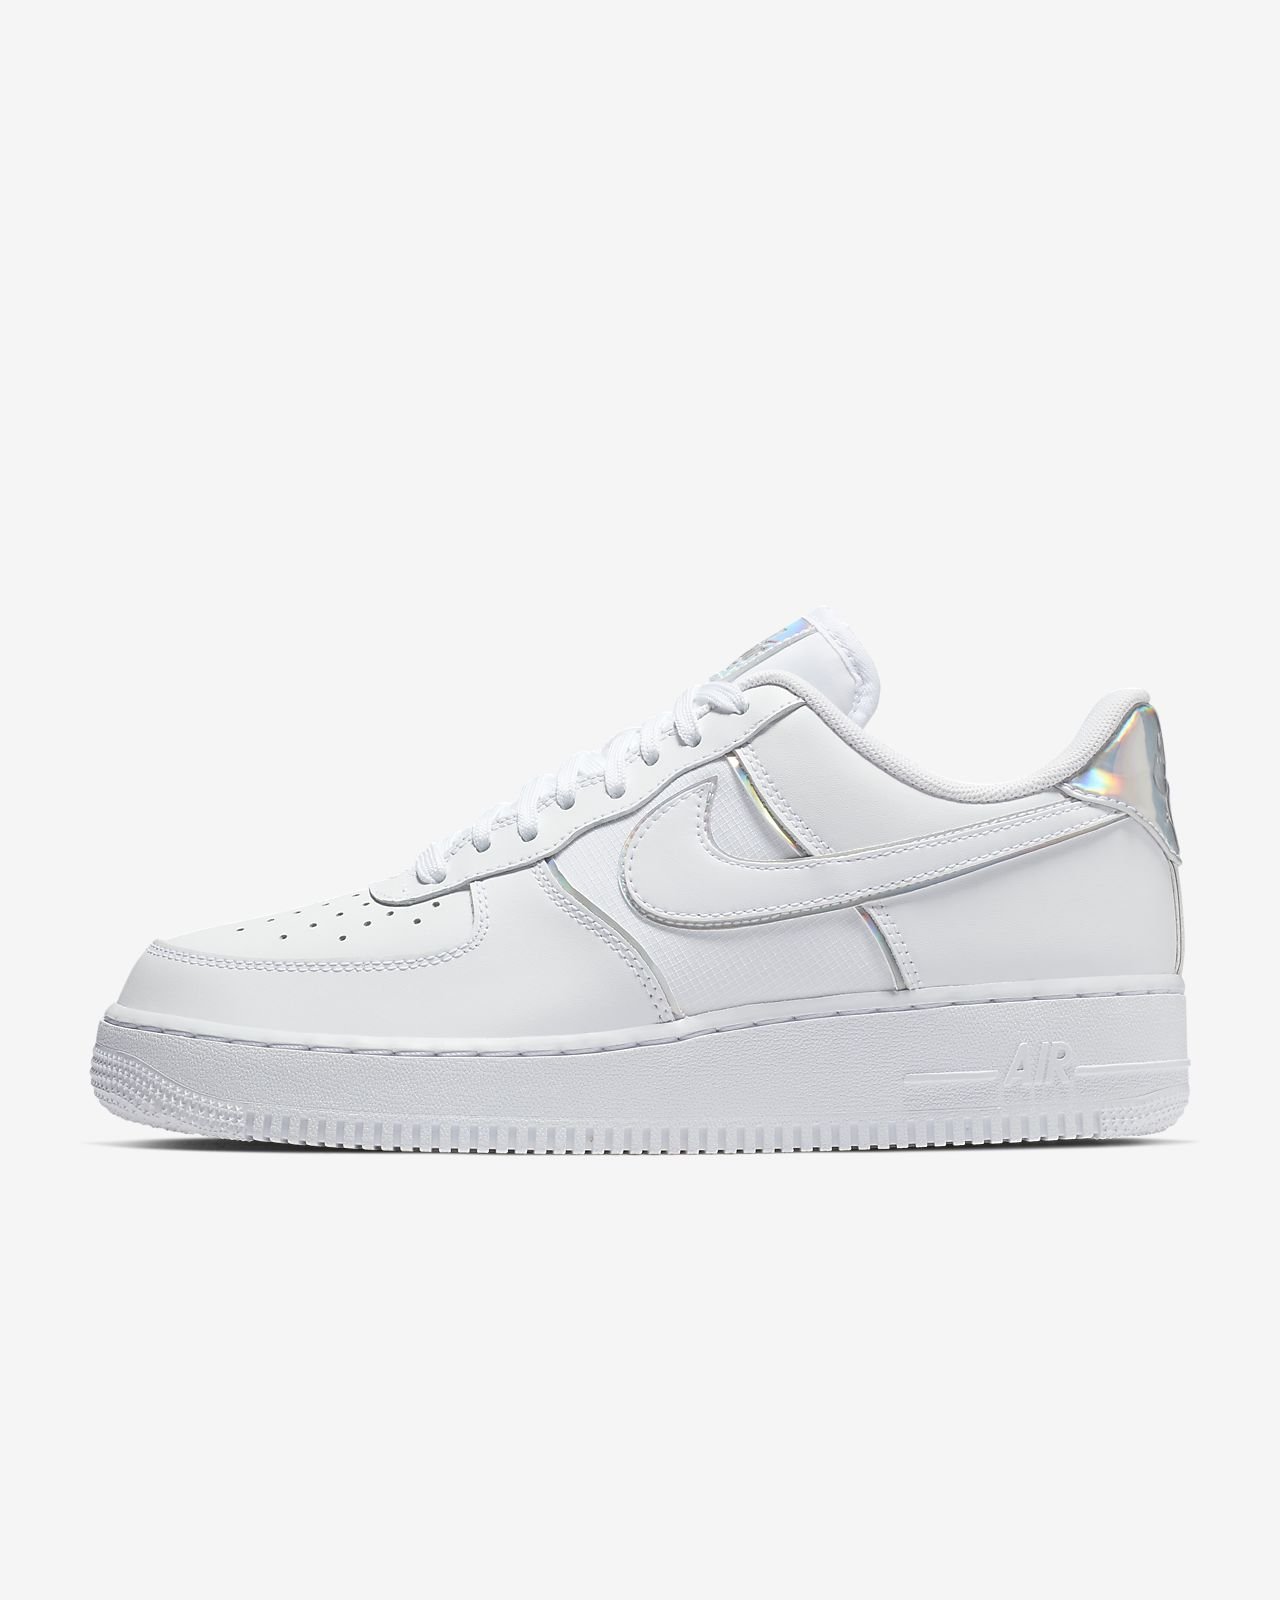 Nike Air Force 1 '07 LV8 4 Men's Shoe